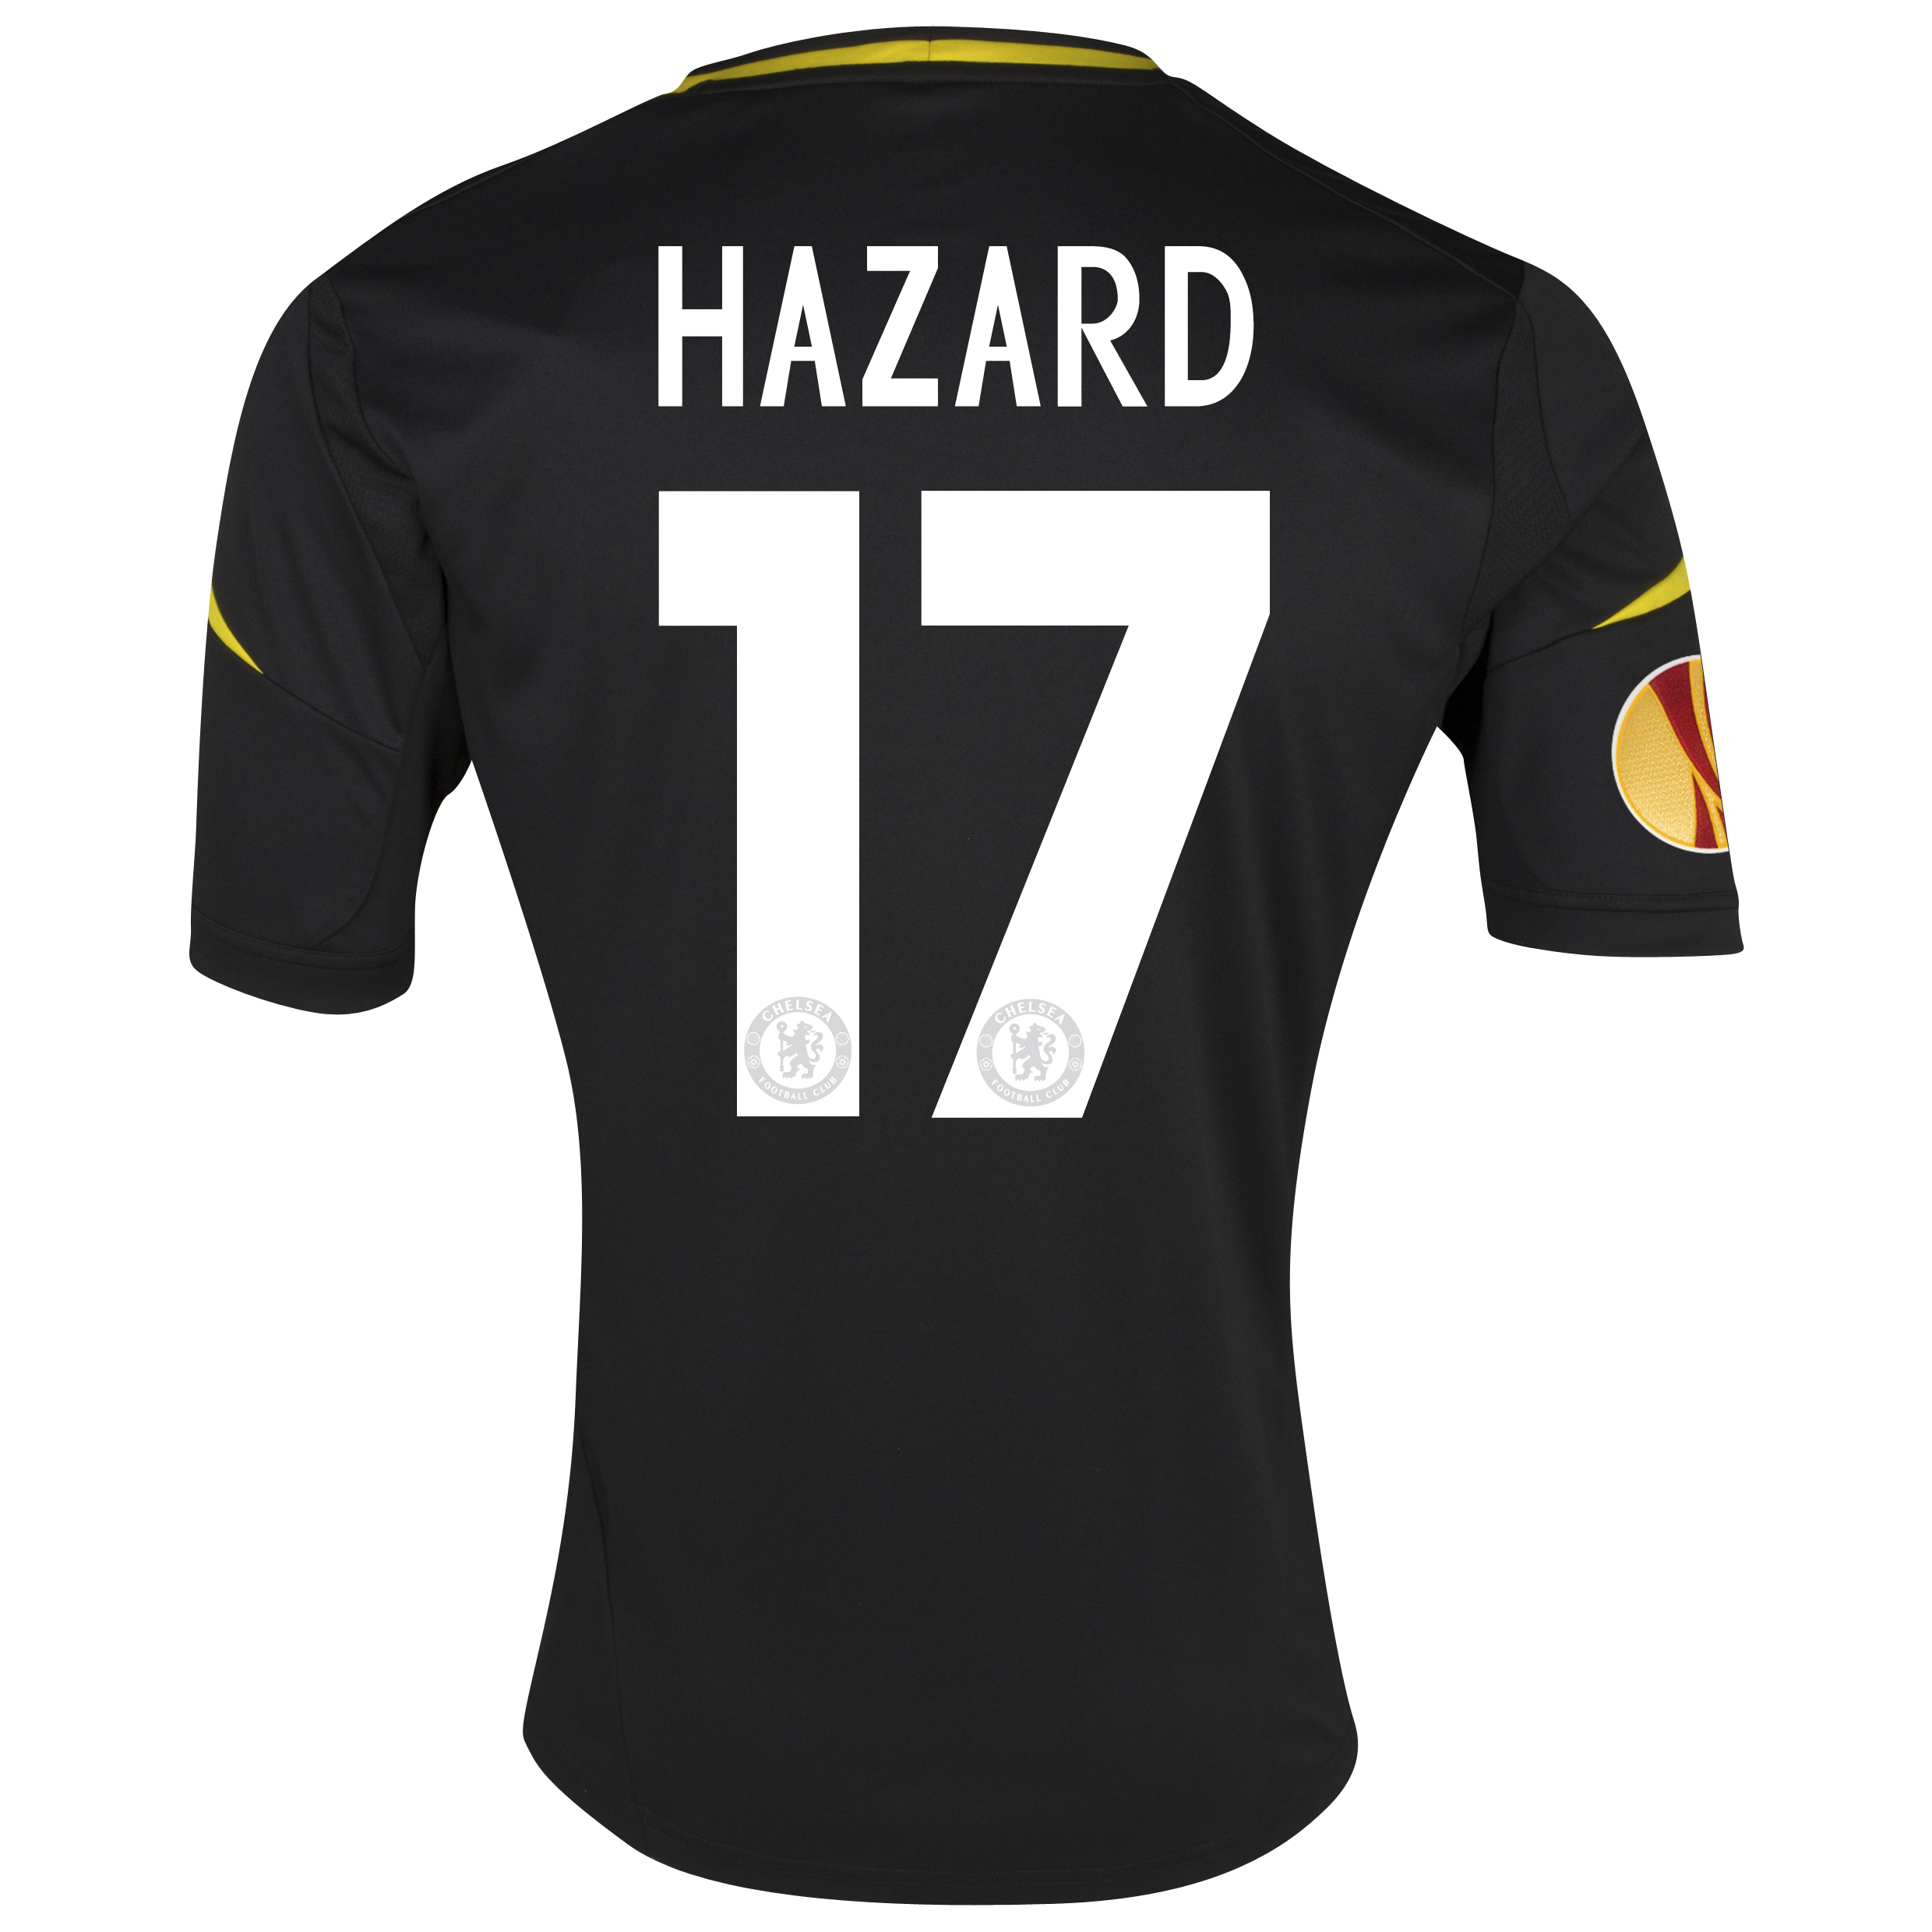 Chelsea UEFA Europa League Third Shirt 2012/13 - Youths with Hazard 17 printing Including Europa Badge